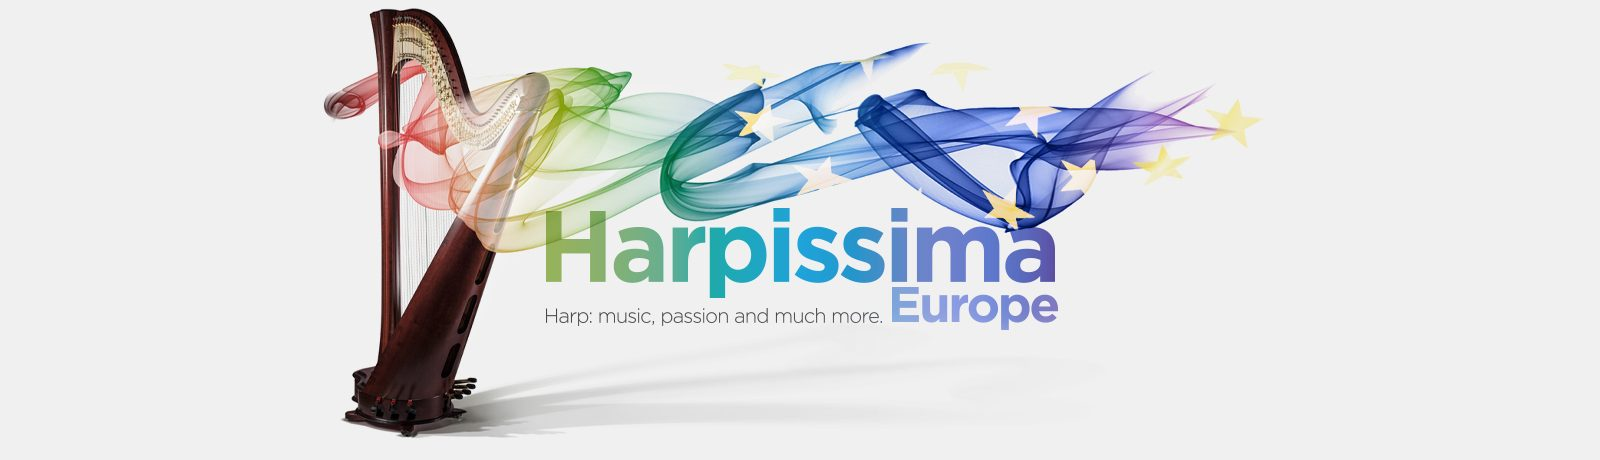 Harpissima Europe